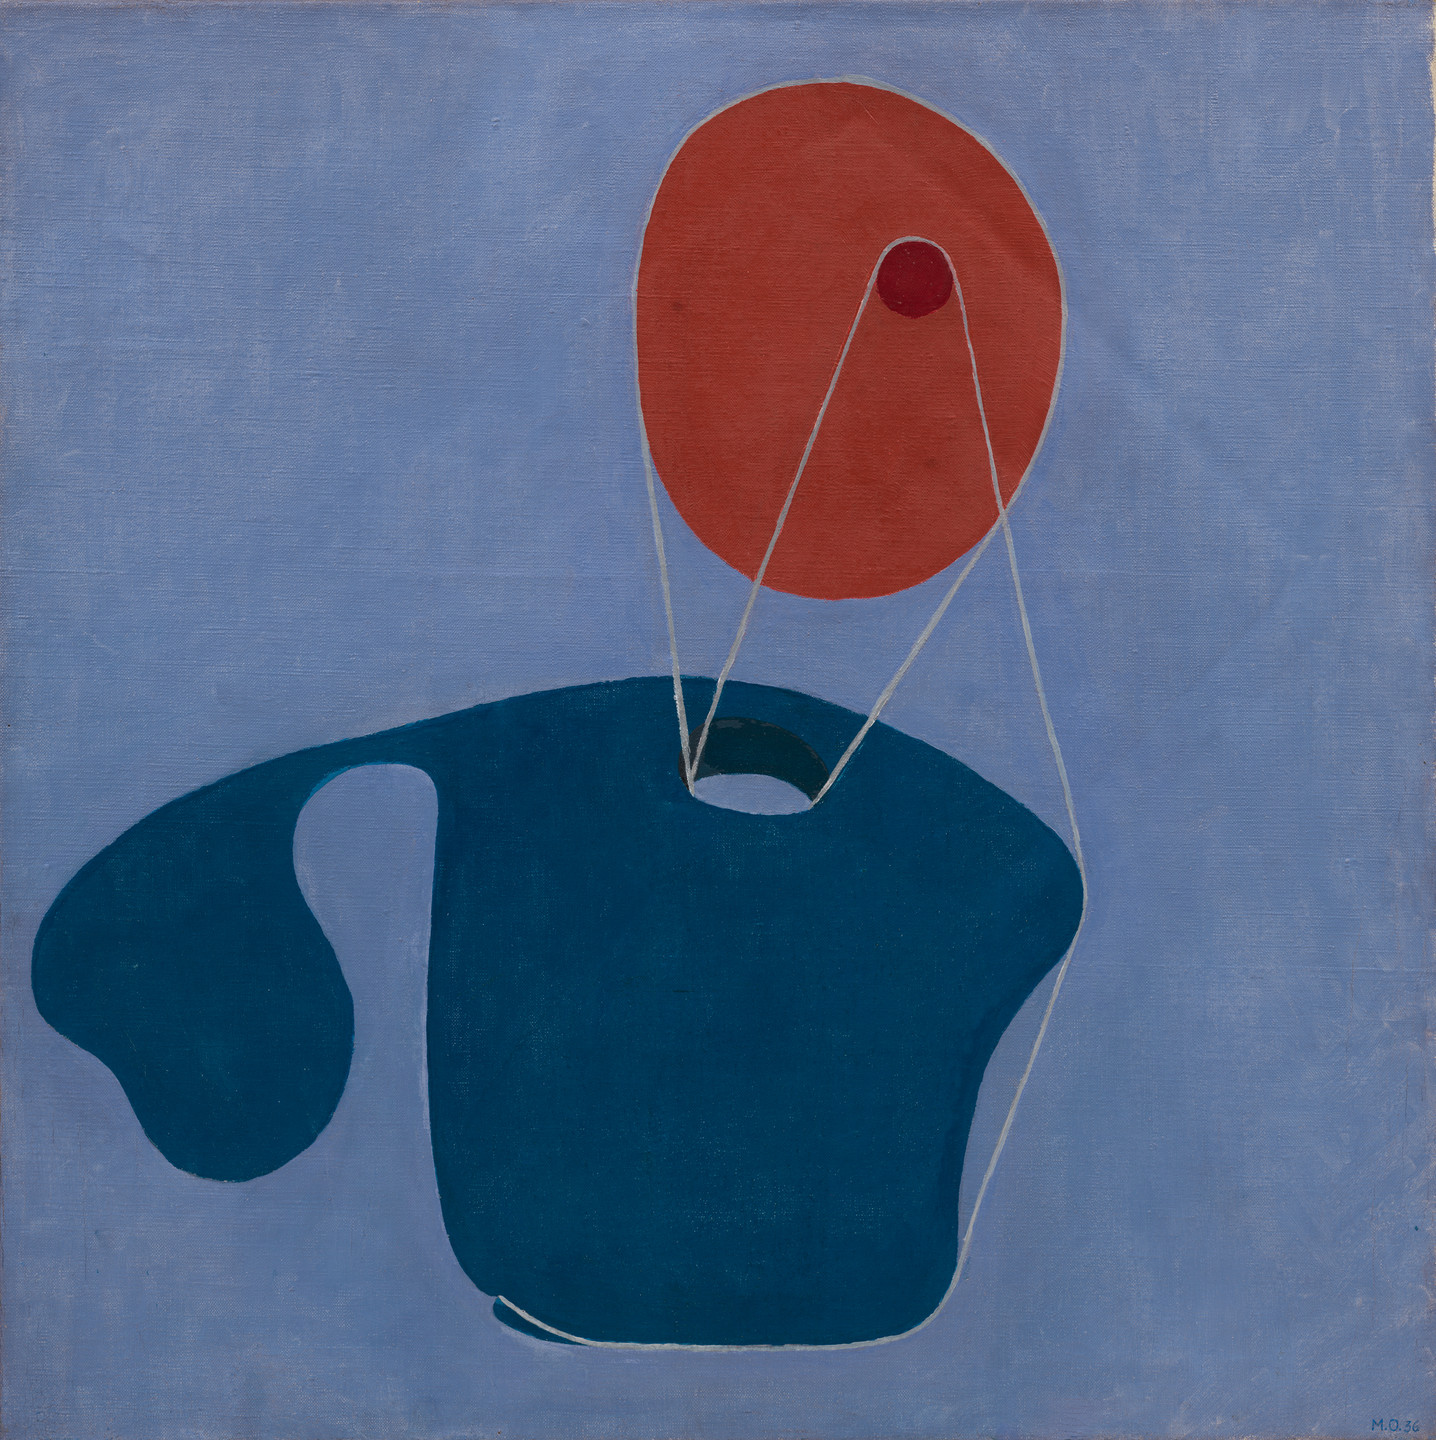 Meret Oppenheim. Red Head, Blue Body. 1936